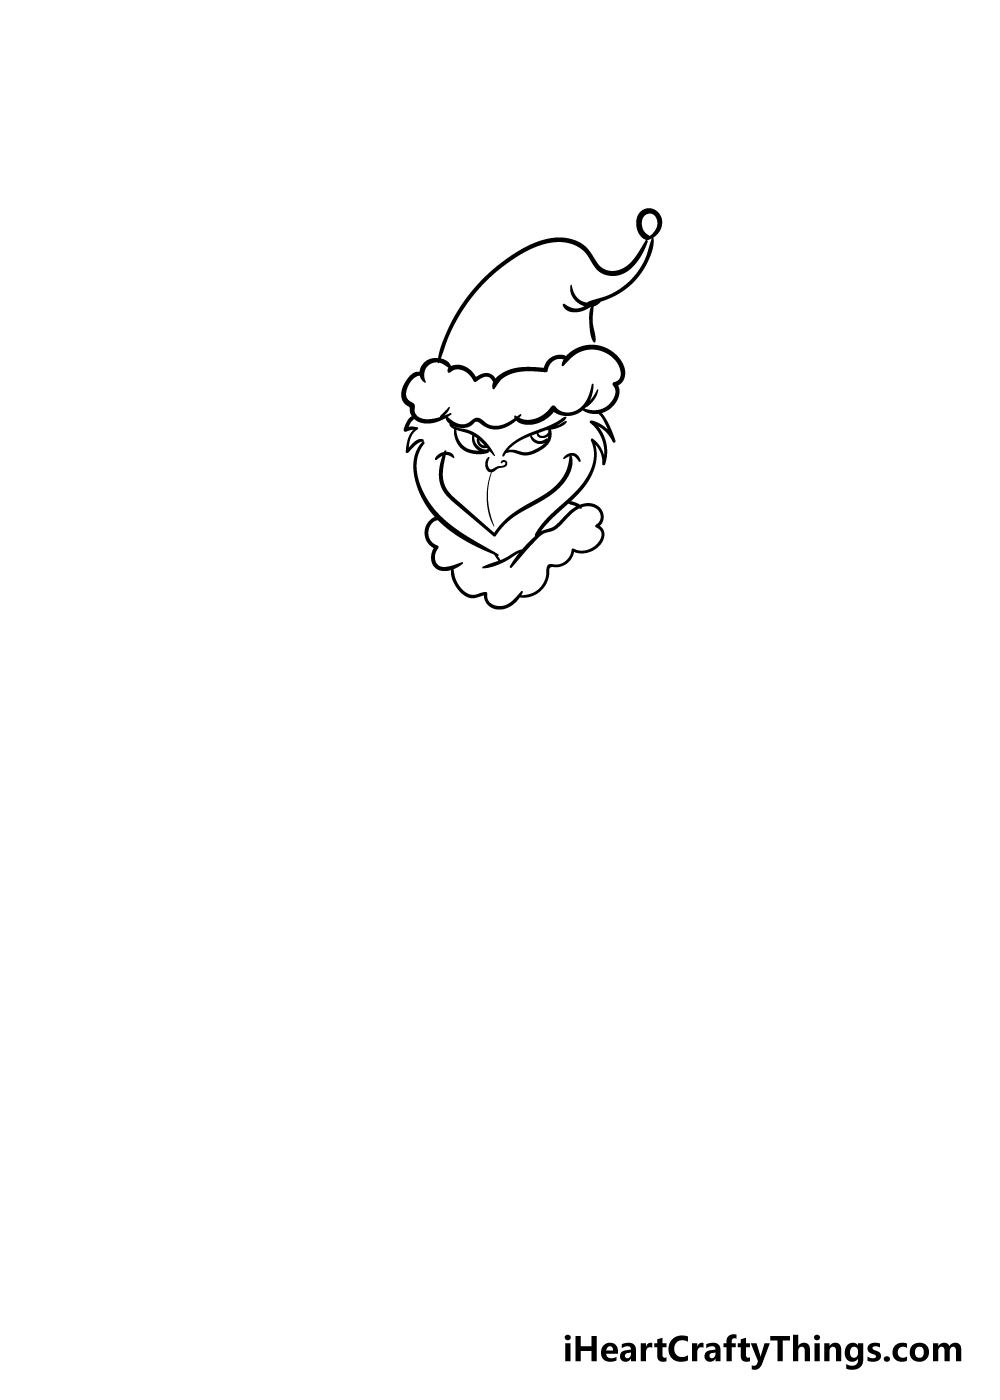 grinch drawing step 3